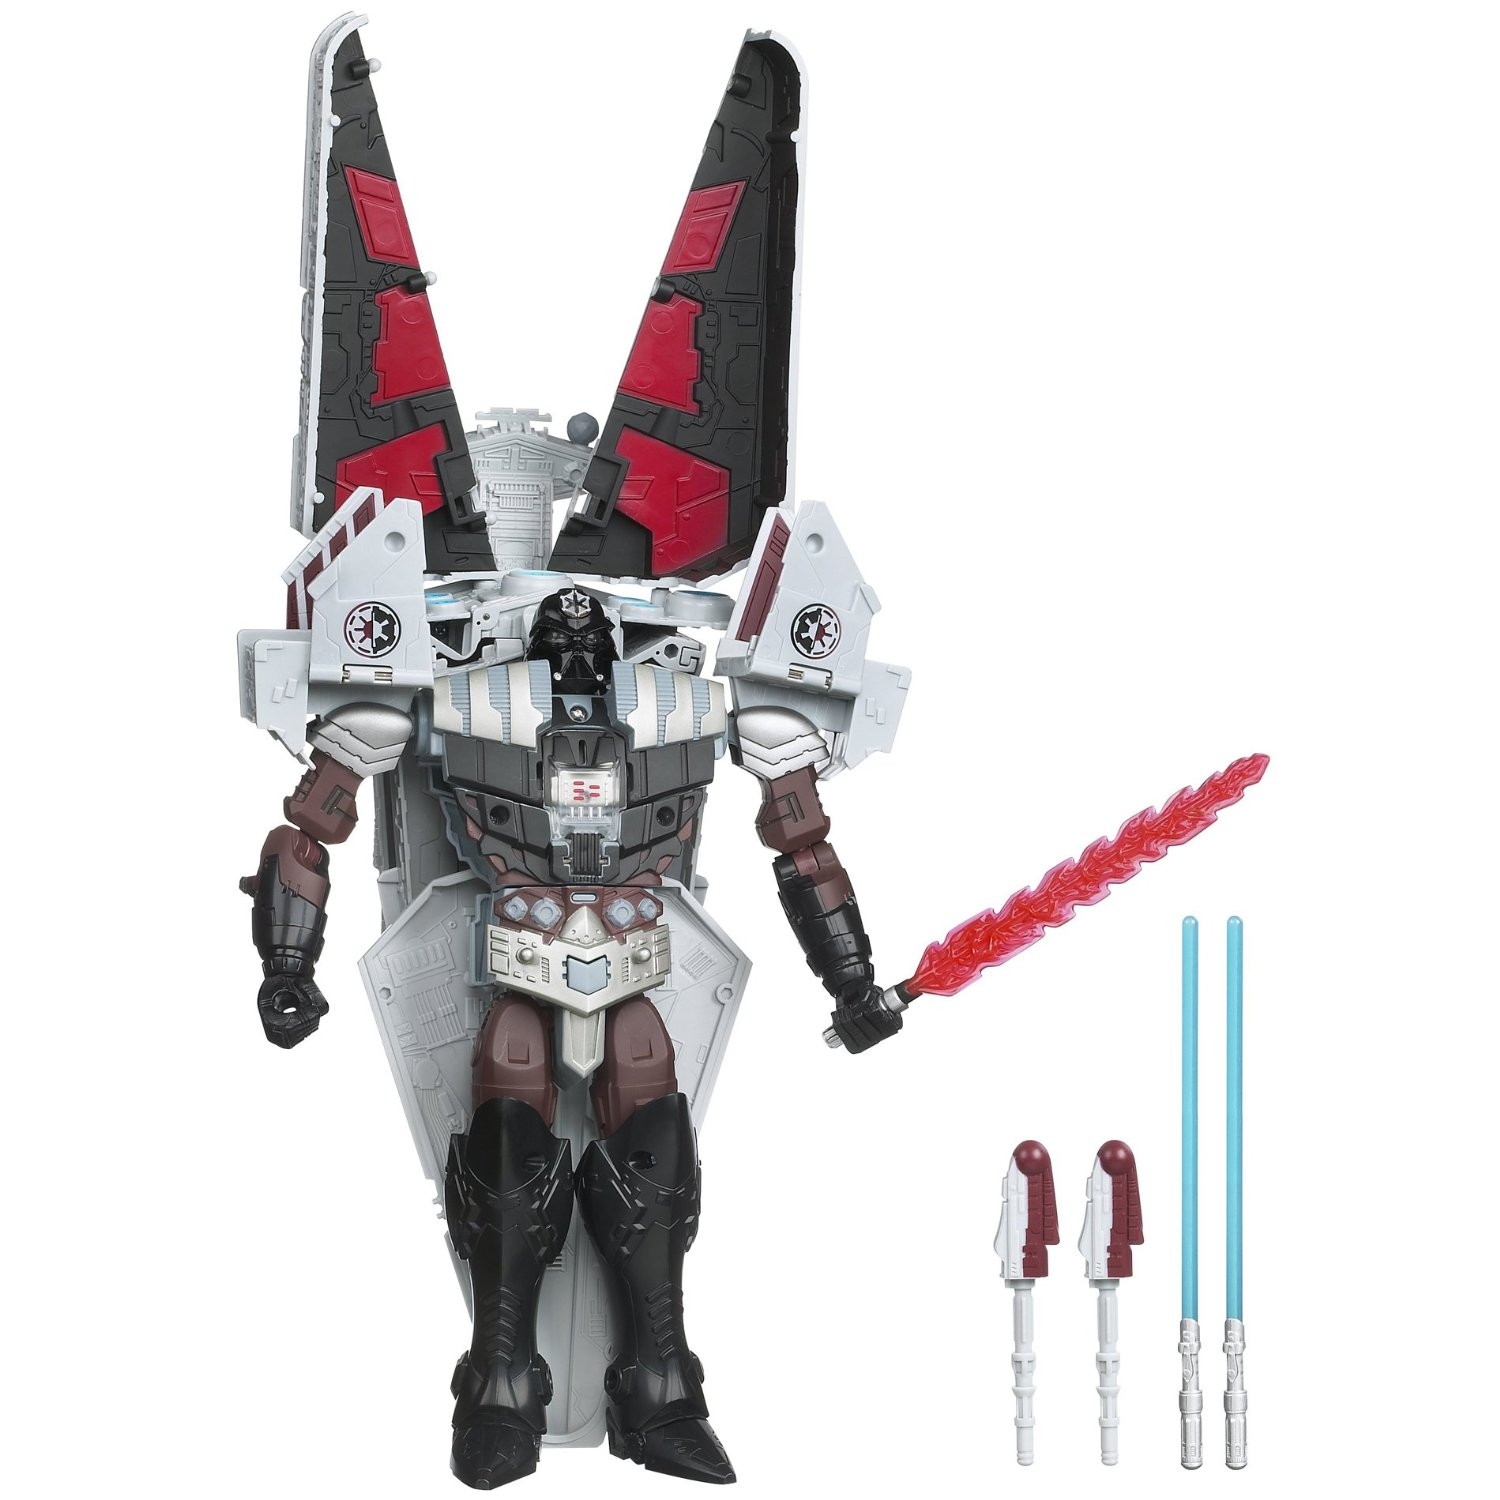 Star Wars Transformers Class Iii Darth Vader To Star